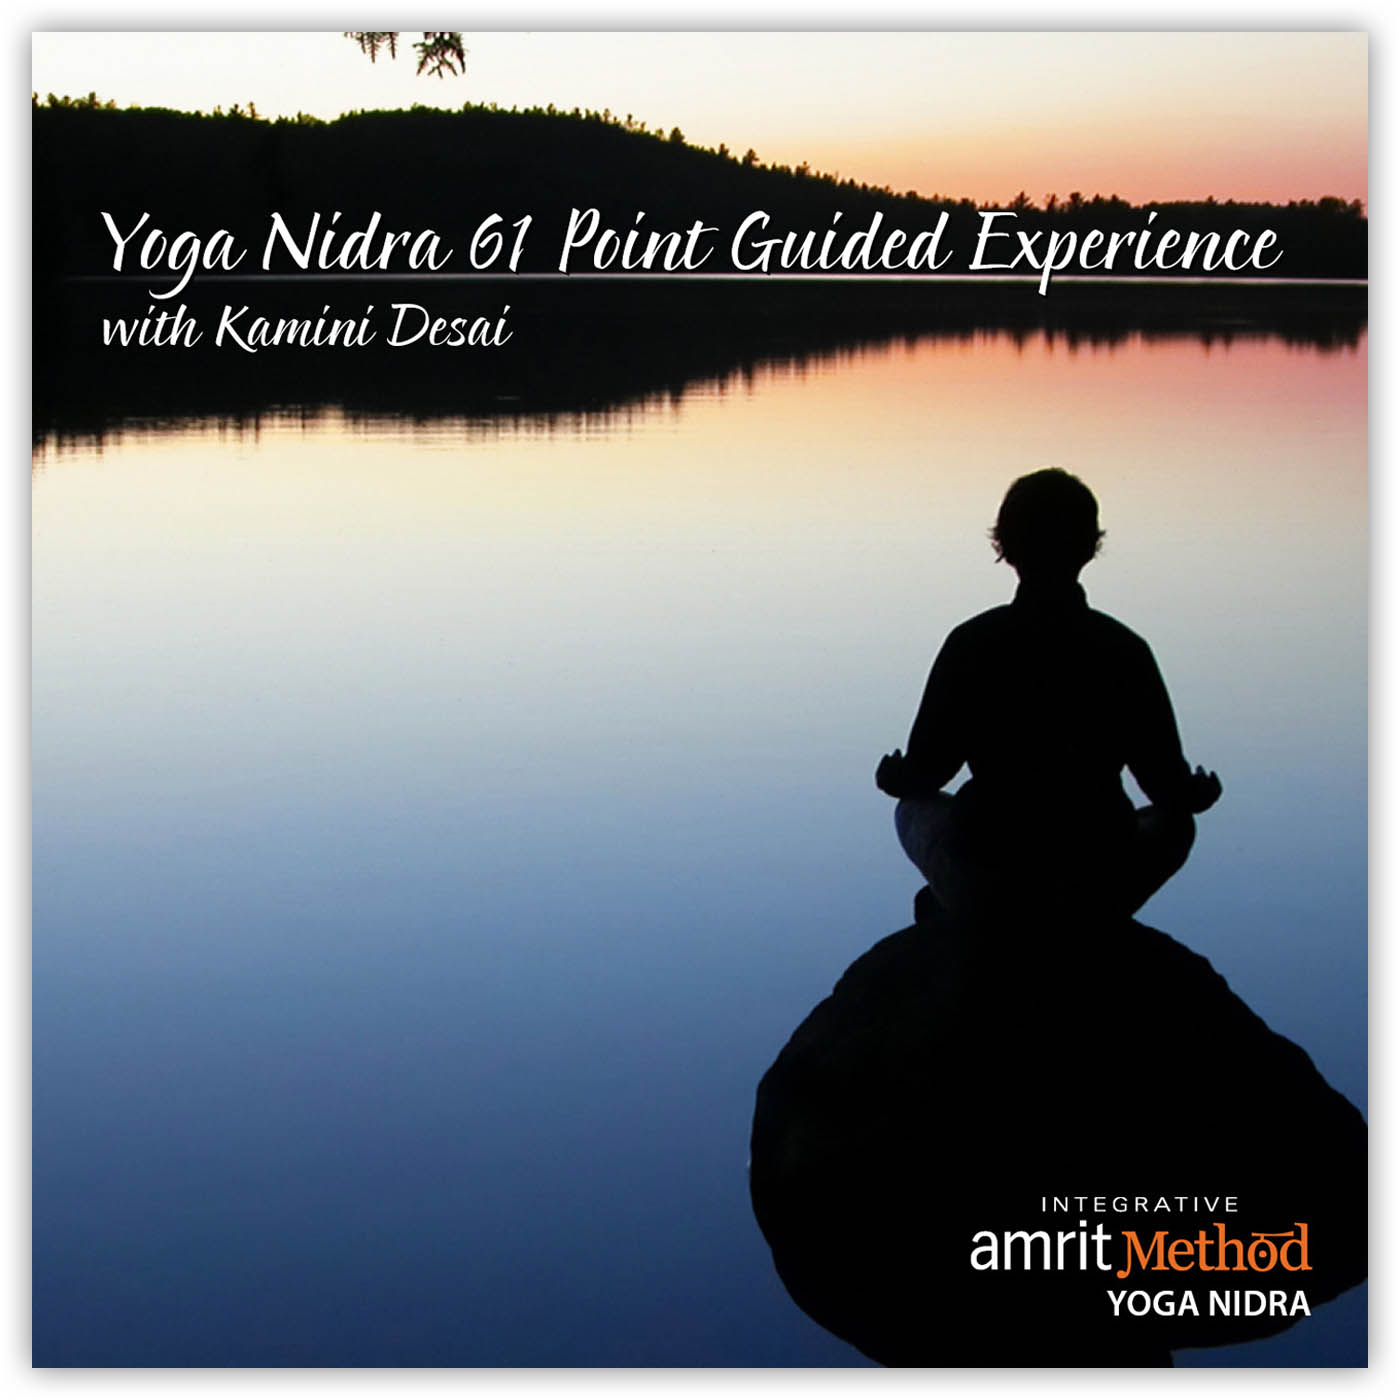 Yoga Nidra 61 Point Guided Experience With Kamini Desai PhD CD Or Digital Download